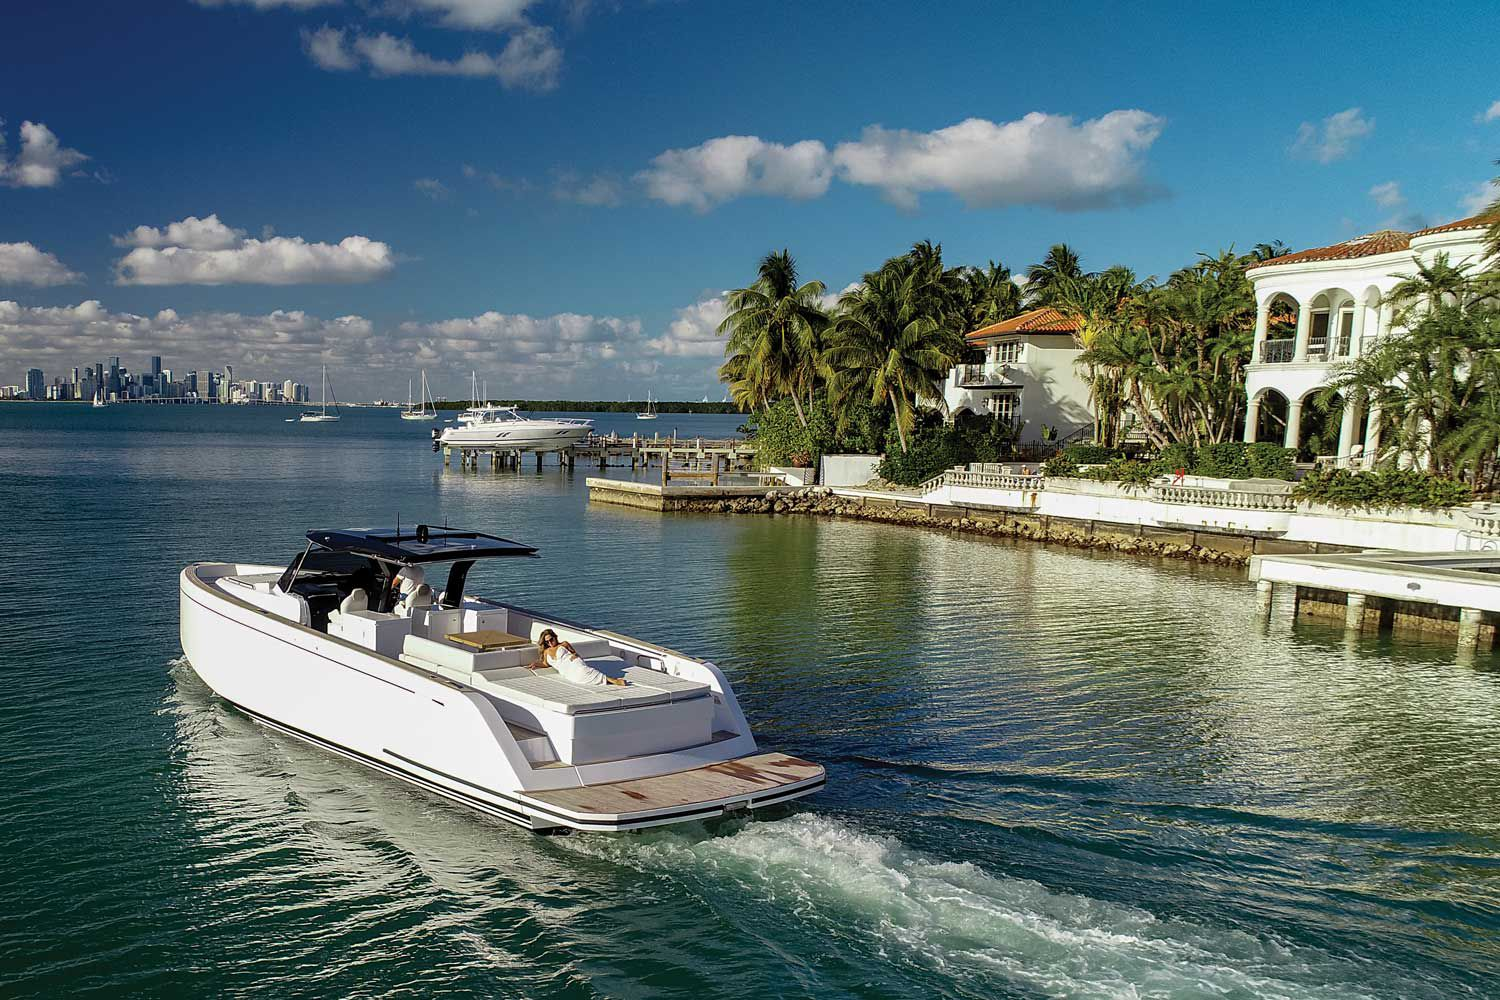 The transom sun pad measures 7 feet, 6 inches wide. High gunwales and 30-inch-wide side decks are designed for safe transit around the yacht.